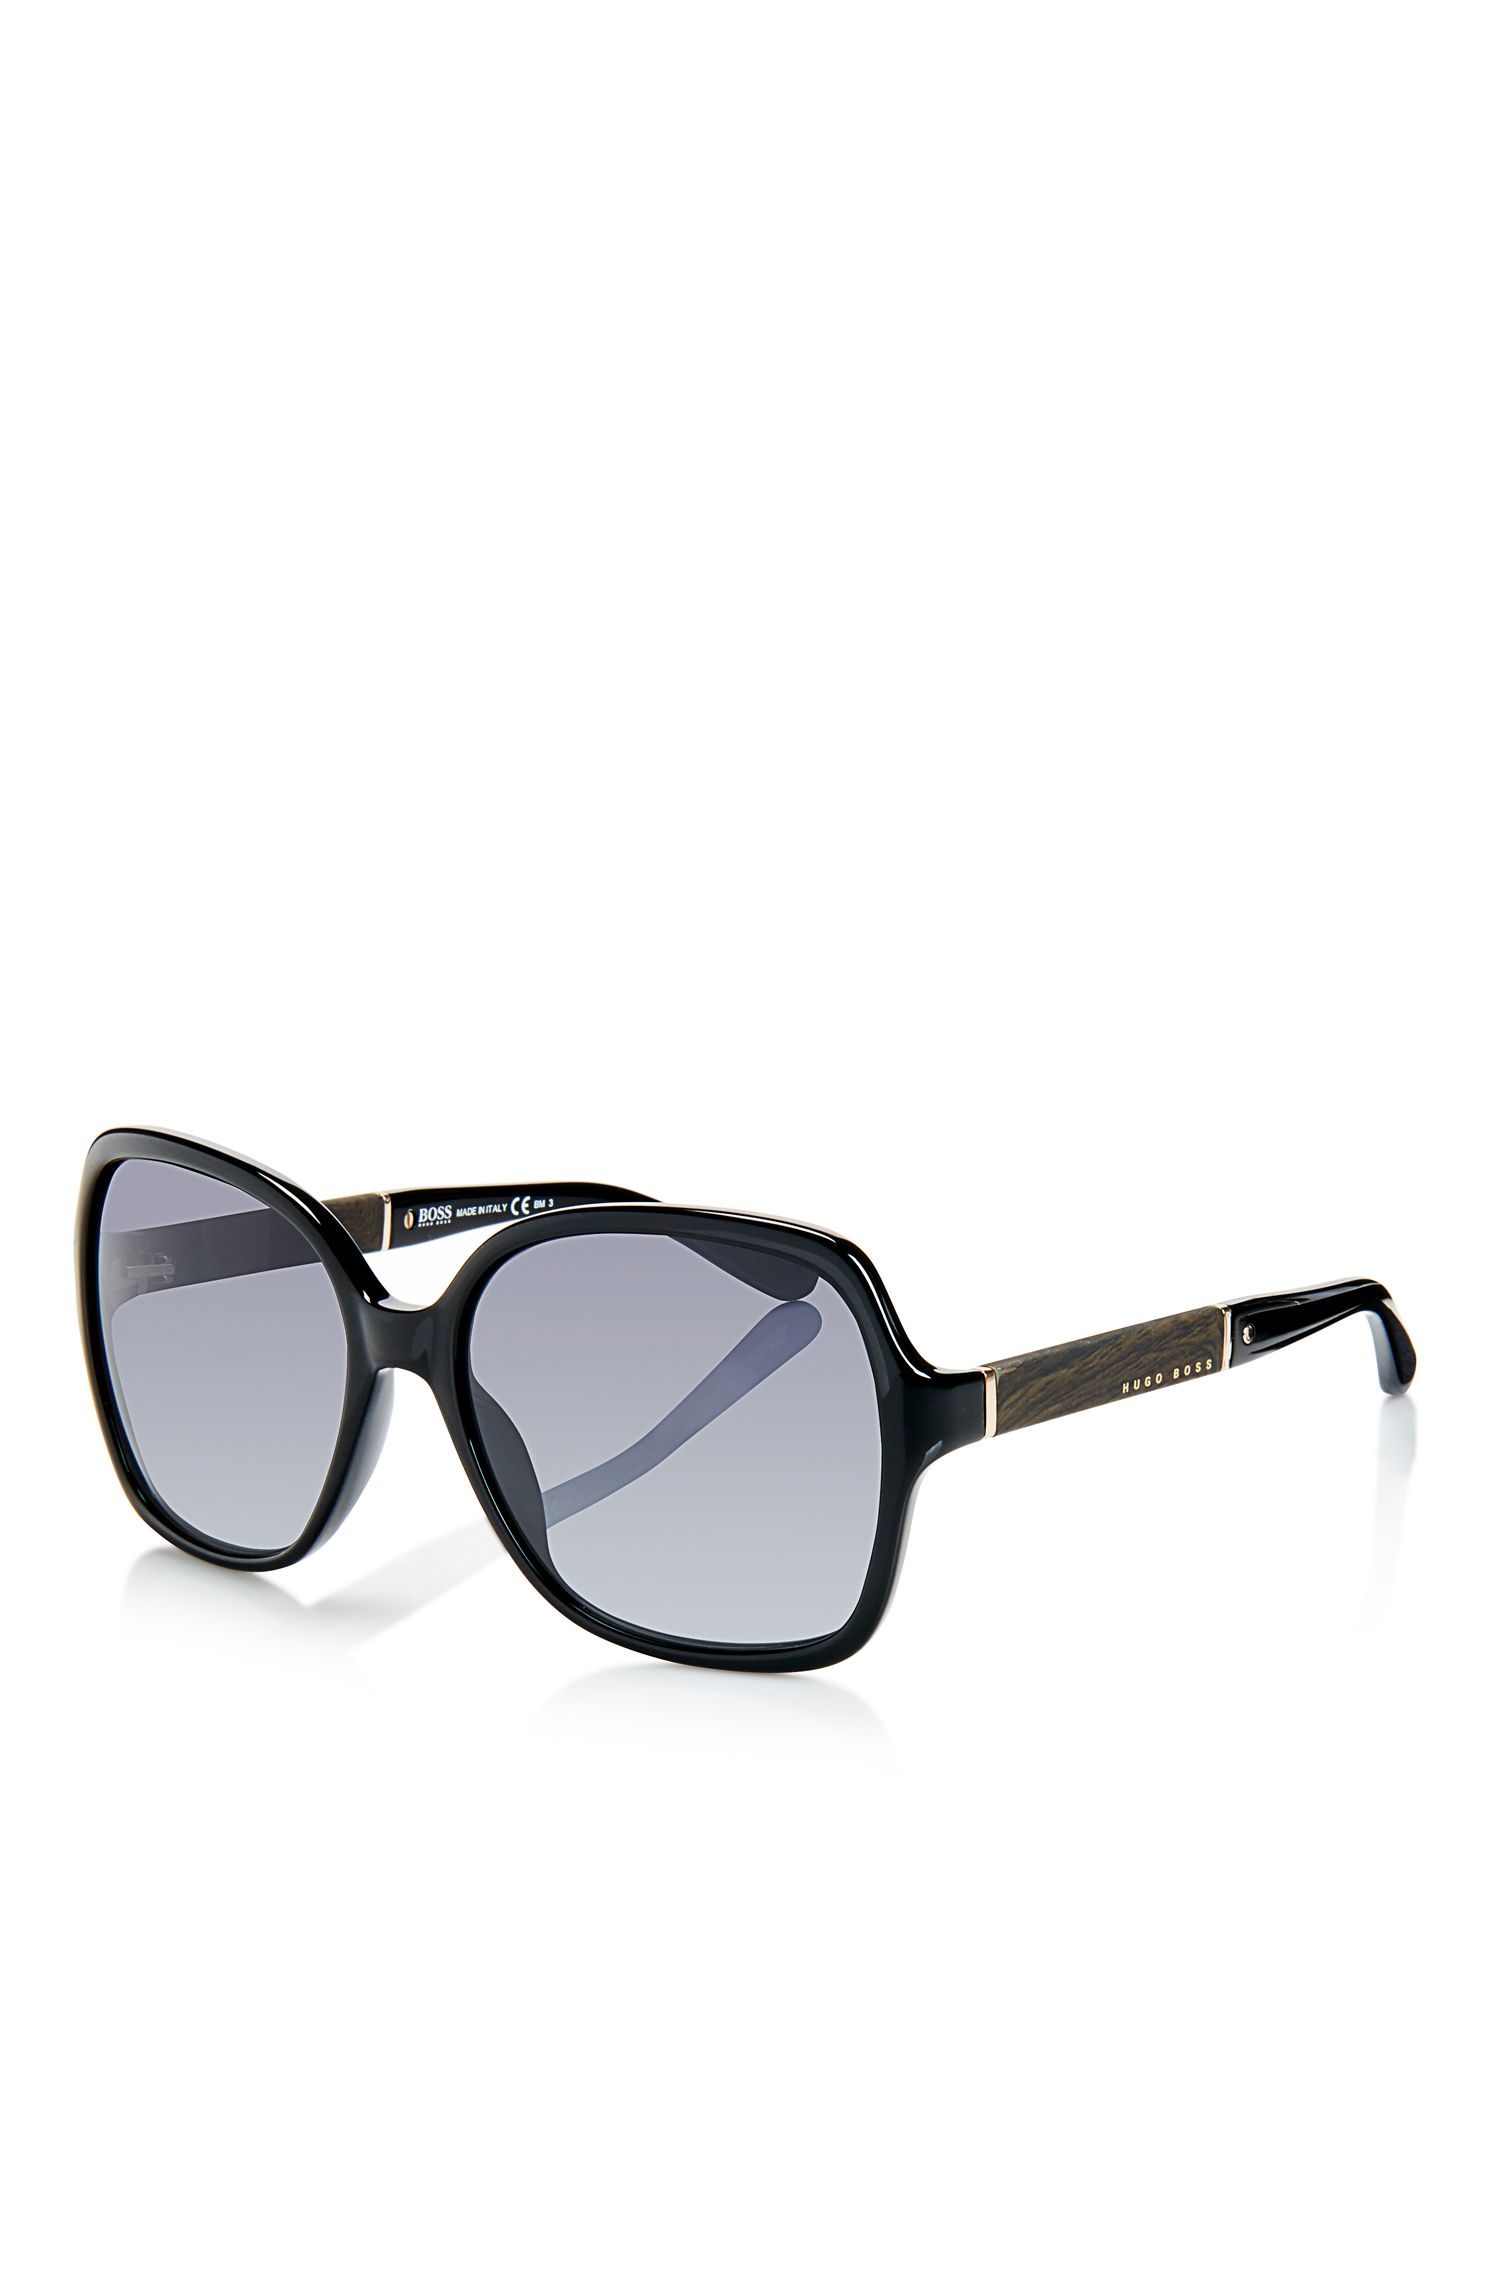 Oversized Wood Detail Sunglasses | BOSS 0664